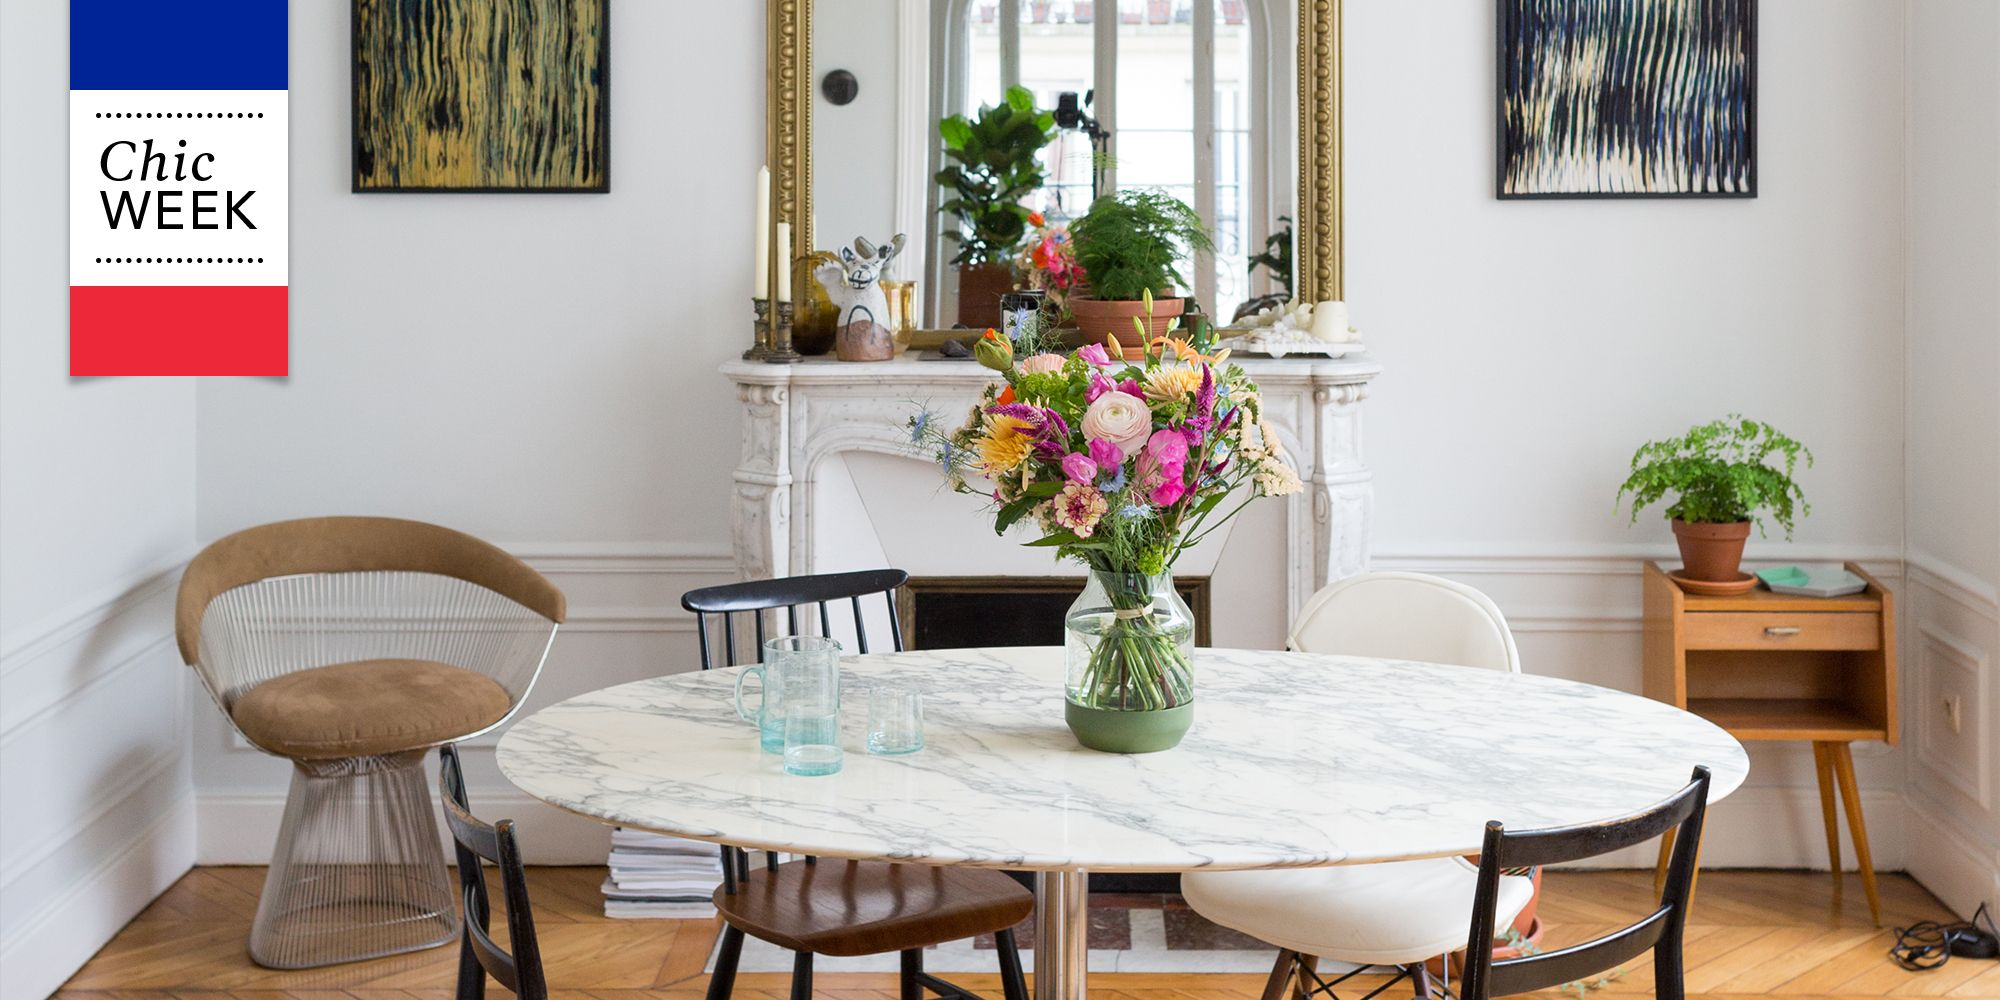 7 French Interior Design Rules To